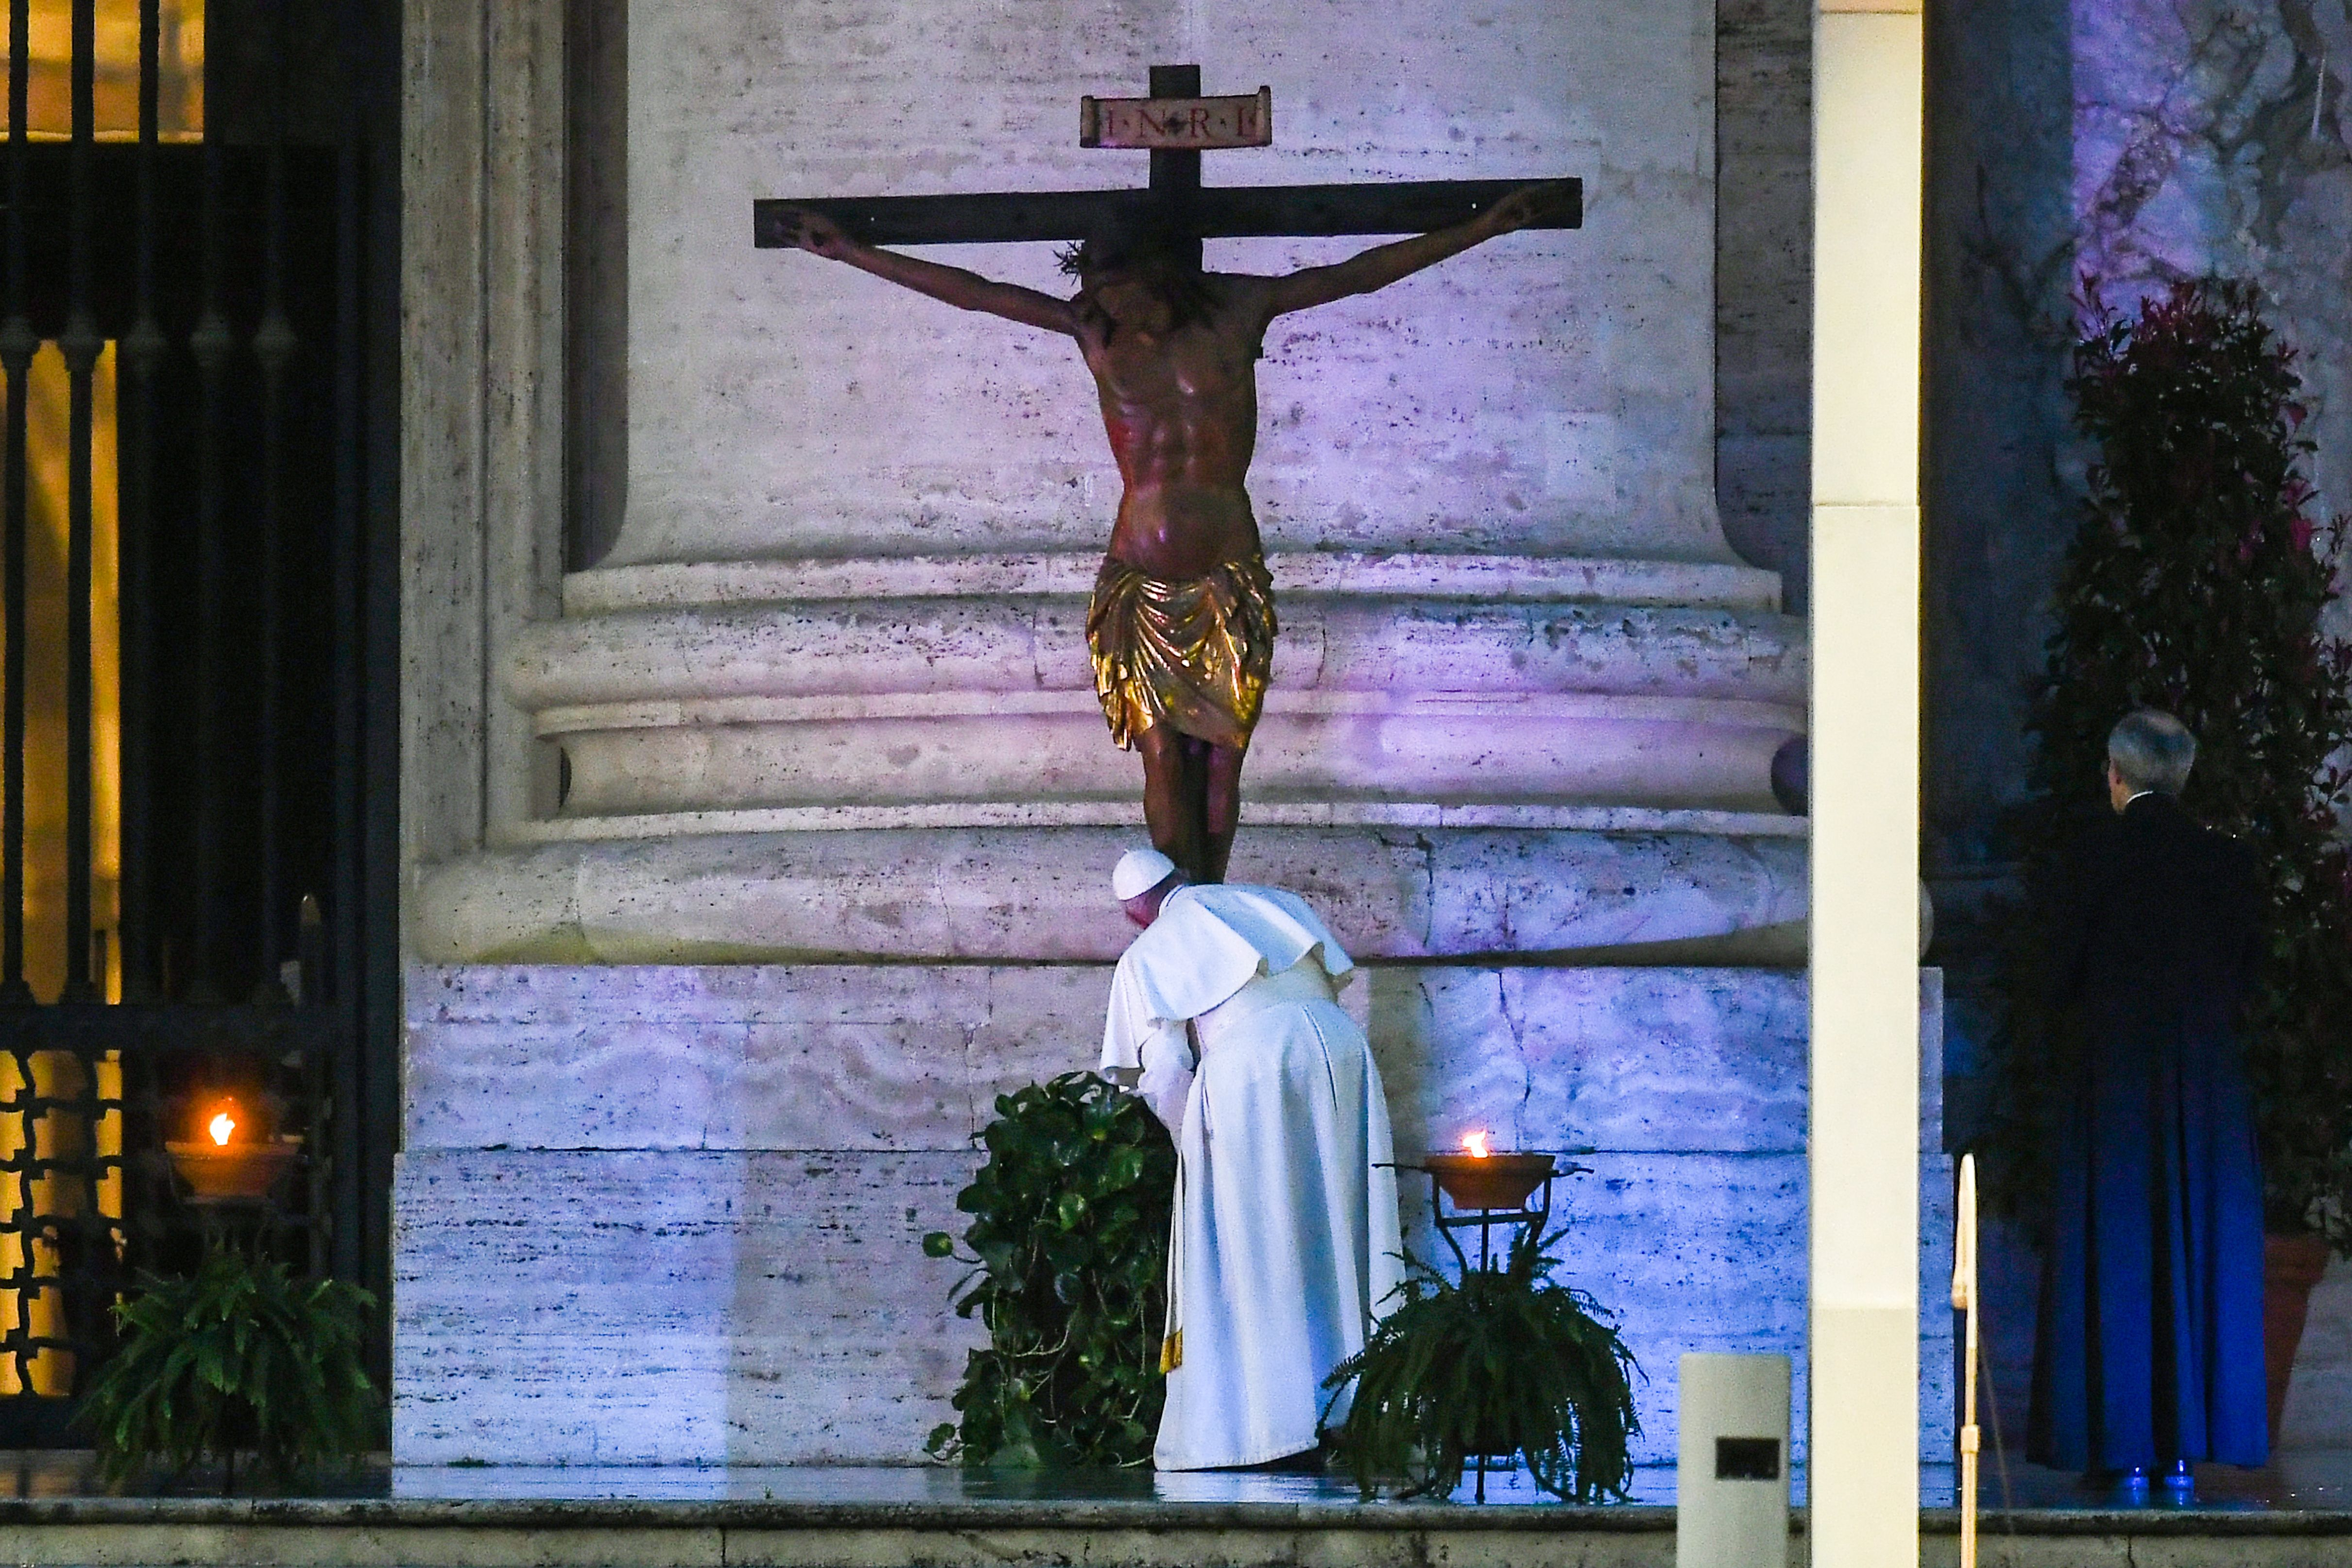 Pope Francis kisses a miraculous crucifix that in 1552 was carried in a procession around Rome to stop the great plague, (Photo by VINCENZO PINTO/AFP via Getty Images)